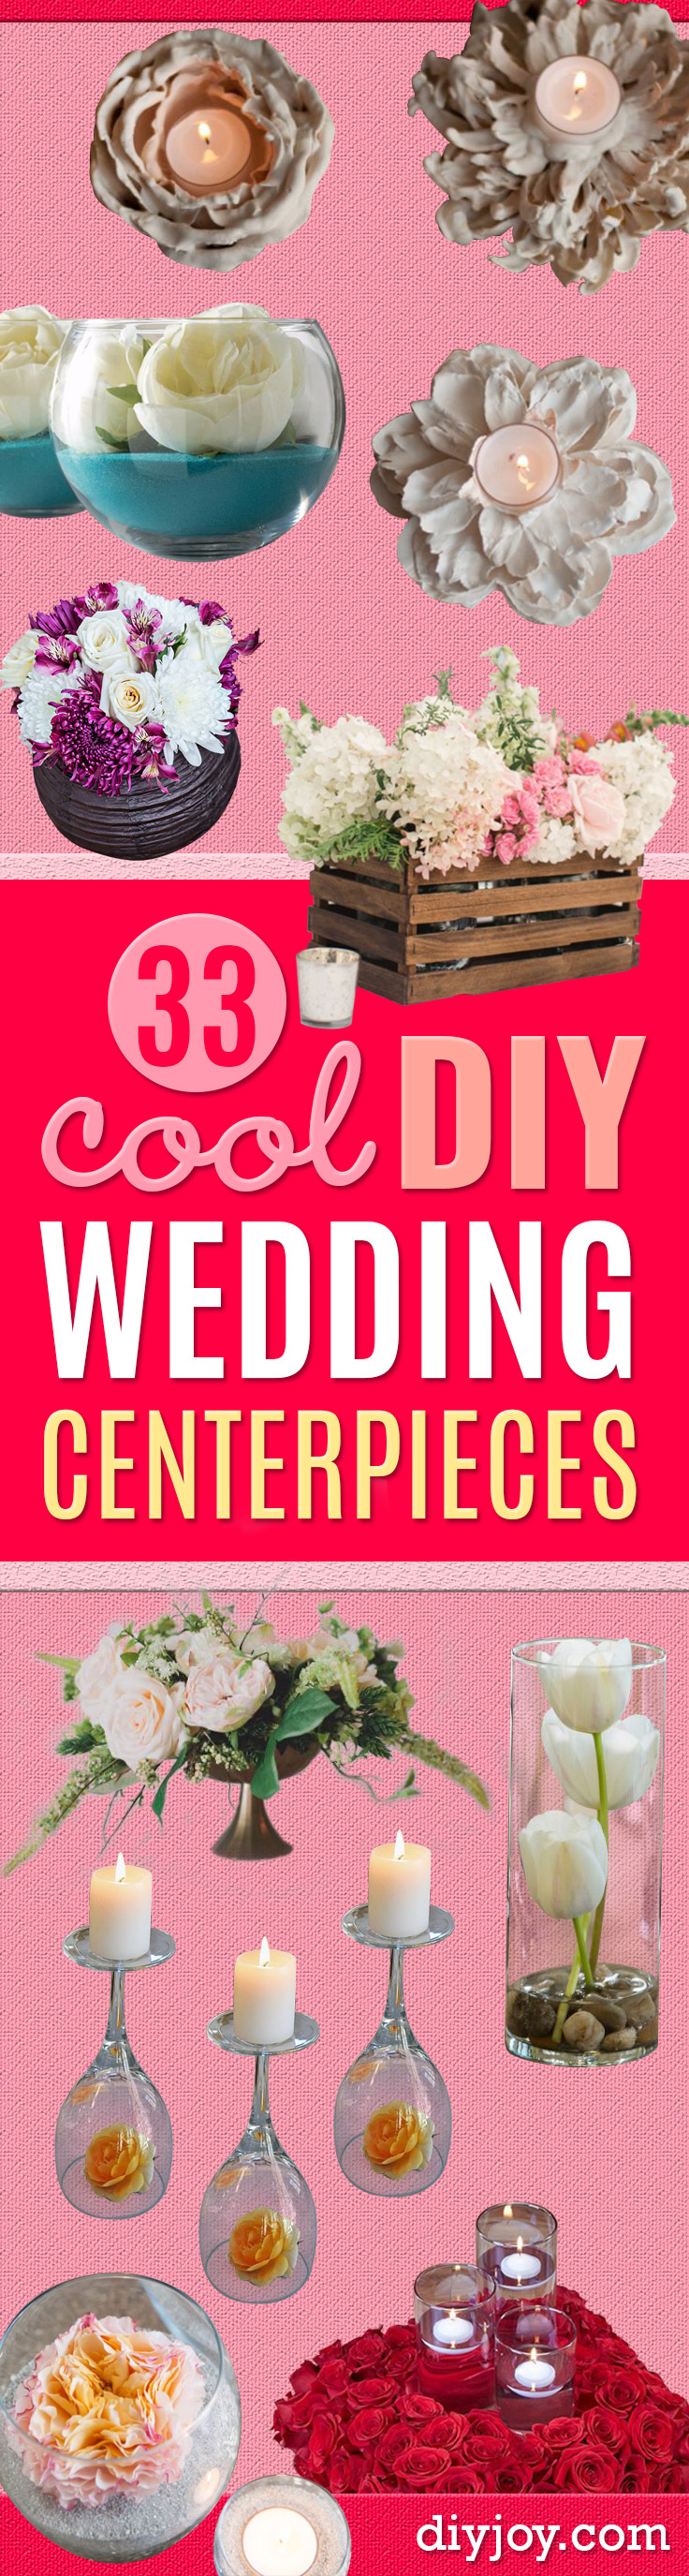 33 best diy wedding centerpieces you can make on a budget diy wedding centerpieces do it yourself ideas for brides and best centerpiece ideas for weddings solutioingenieria Gallery